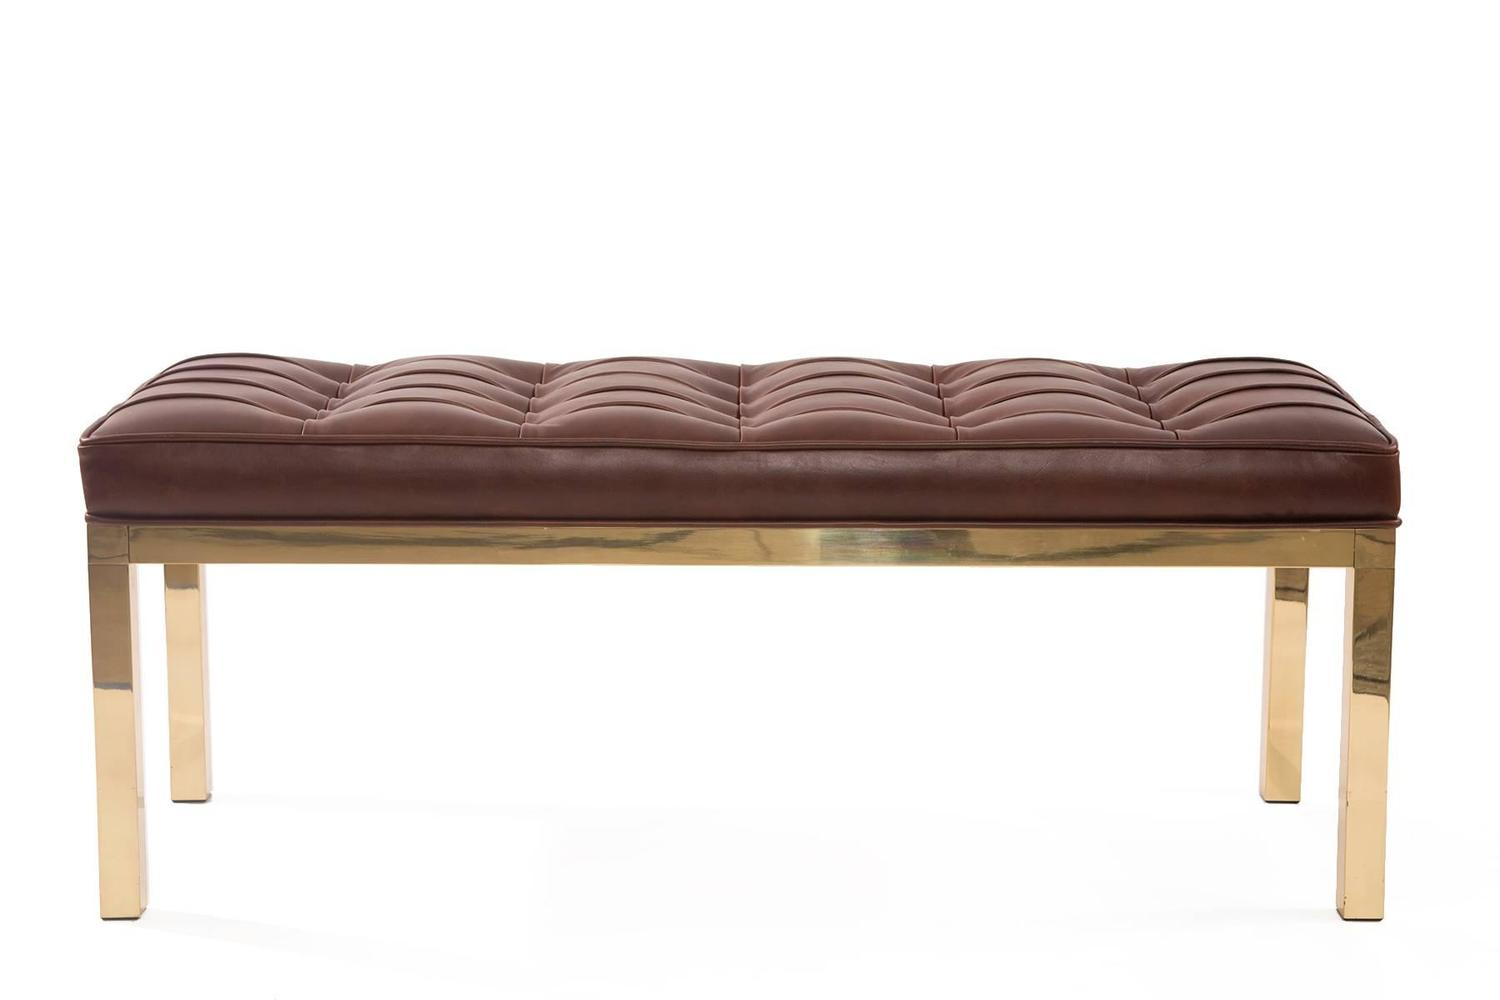 Chocolate Brown Leather And Brass Bench For Sale At 1stdibs